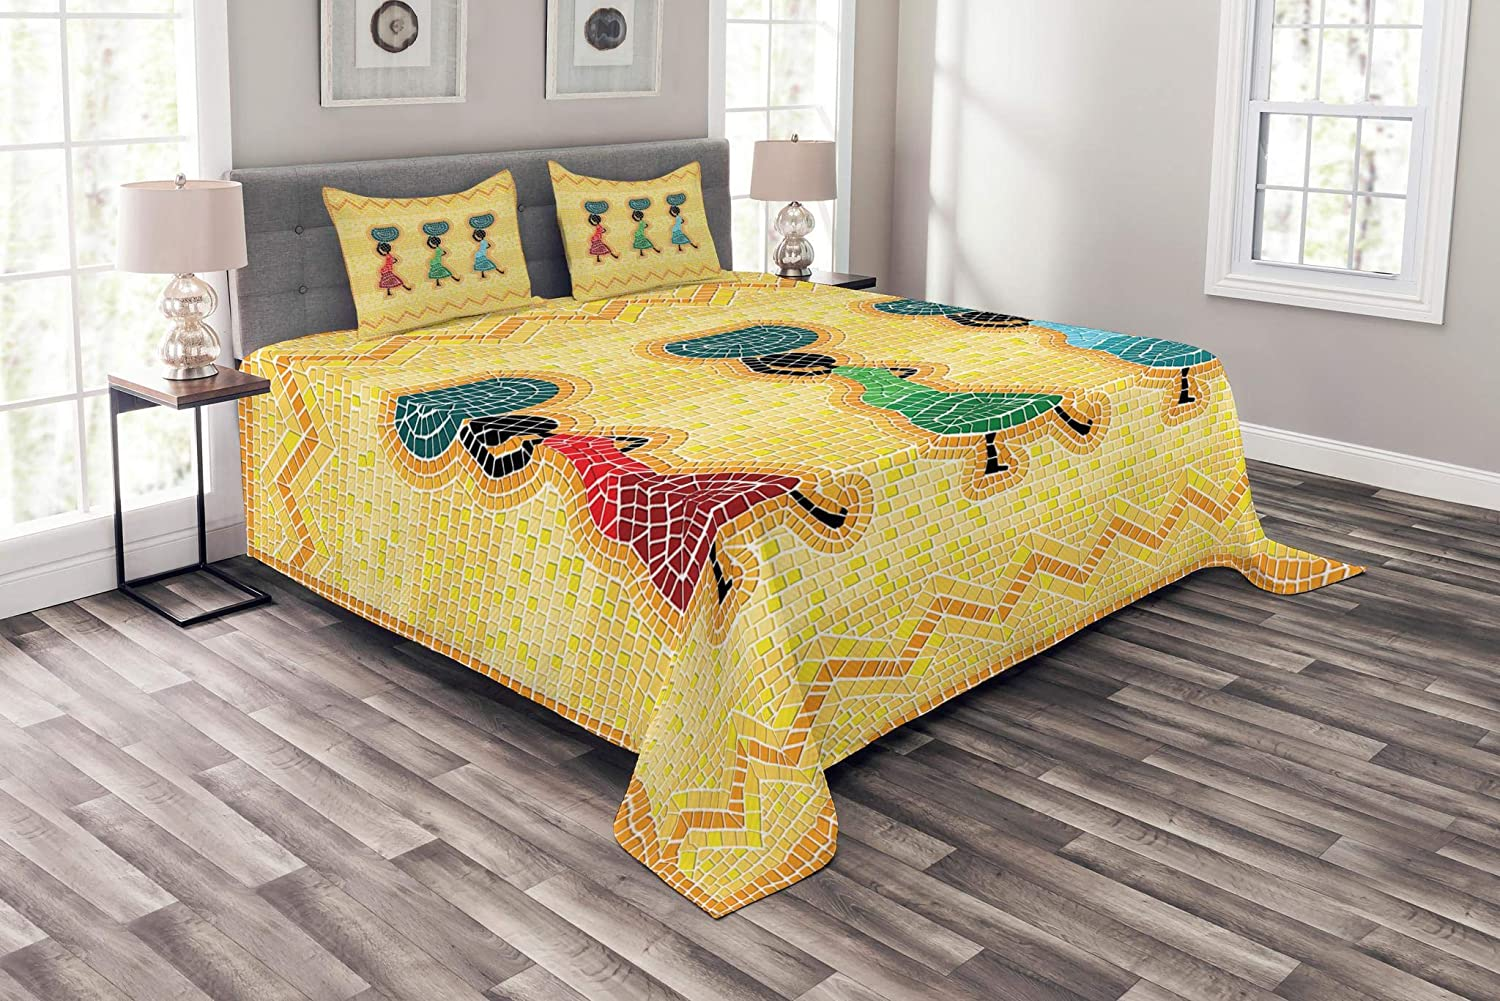 Lunarable African Max 50% OFF Bedspread Mosaic Pattern an Miami Mall Women Ca Scene of